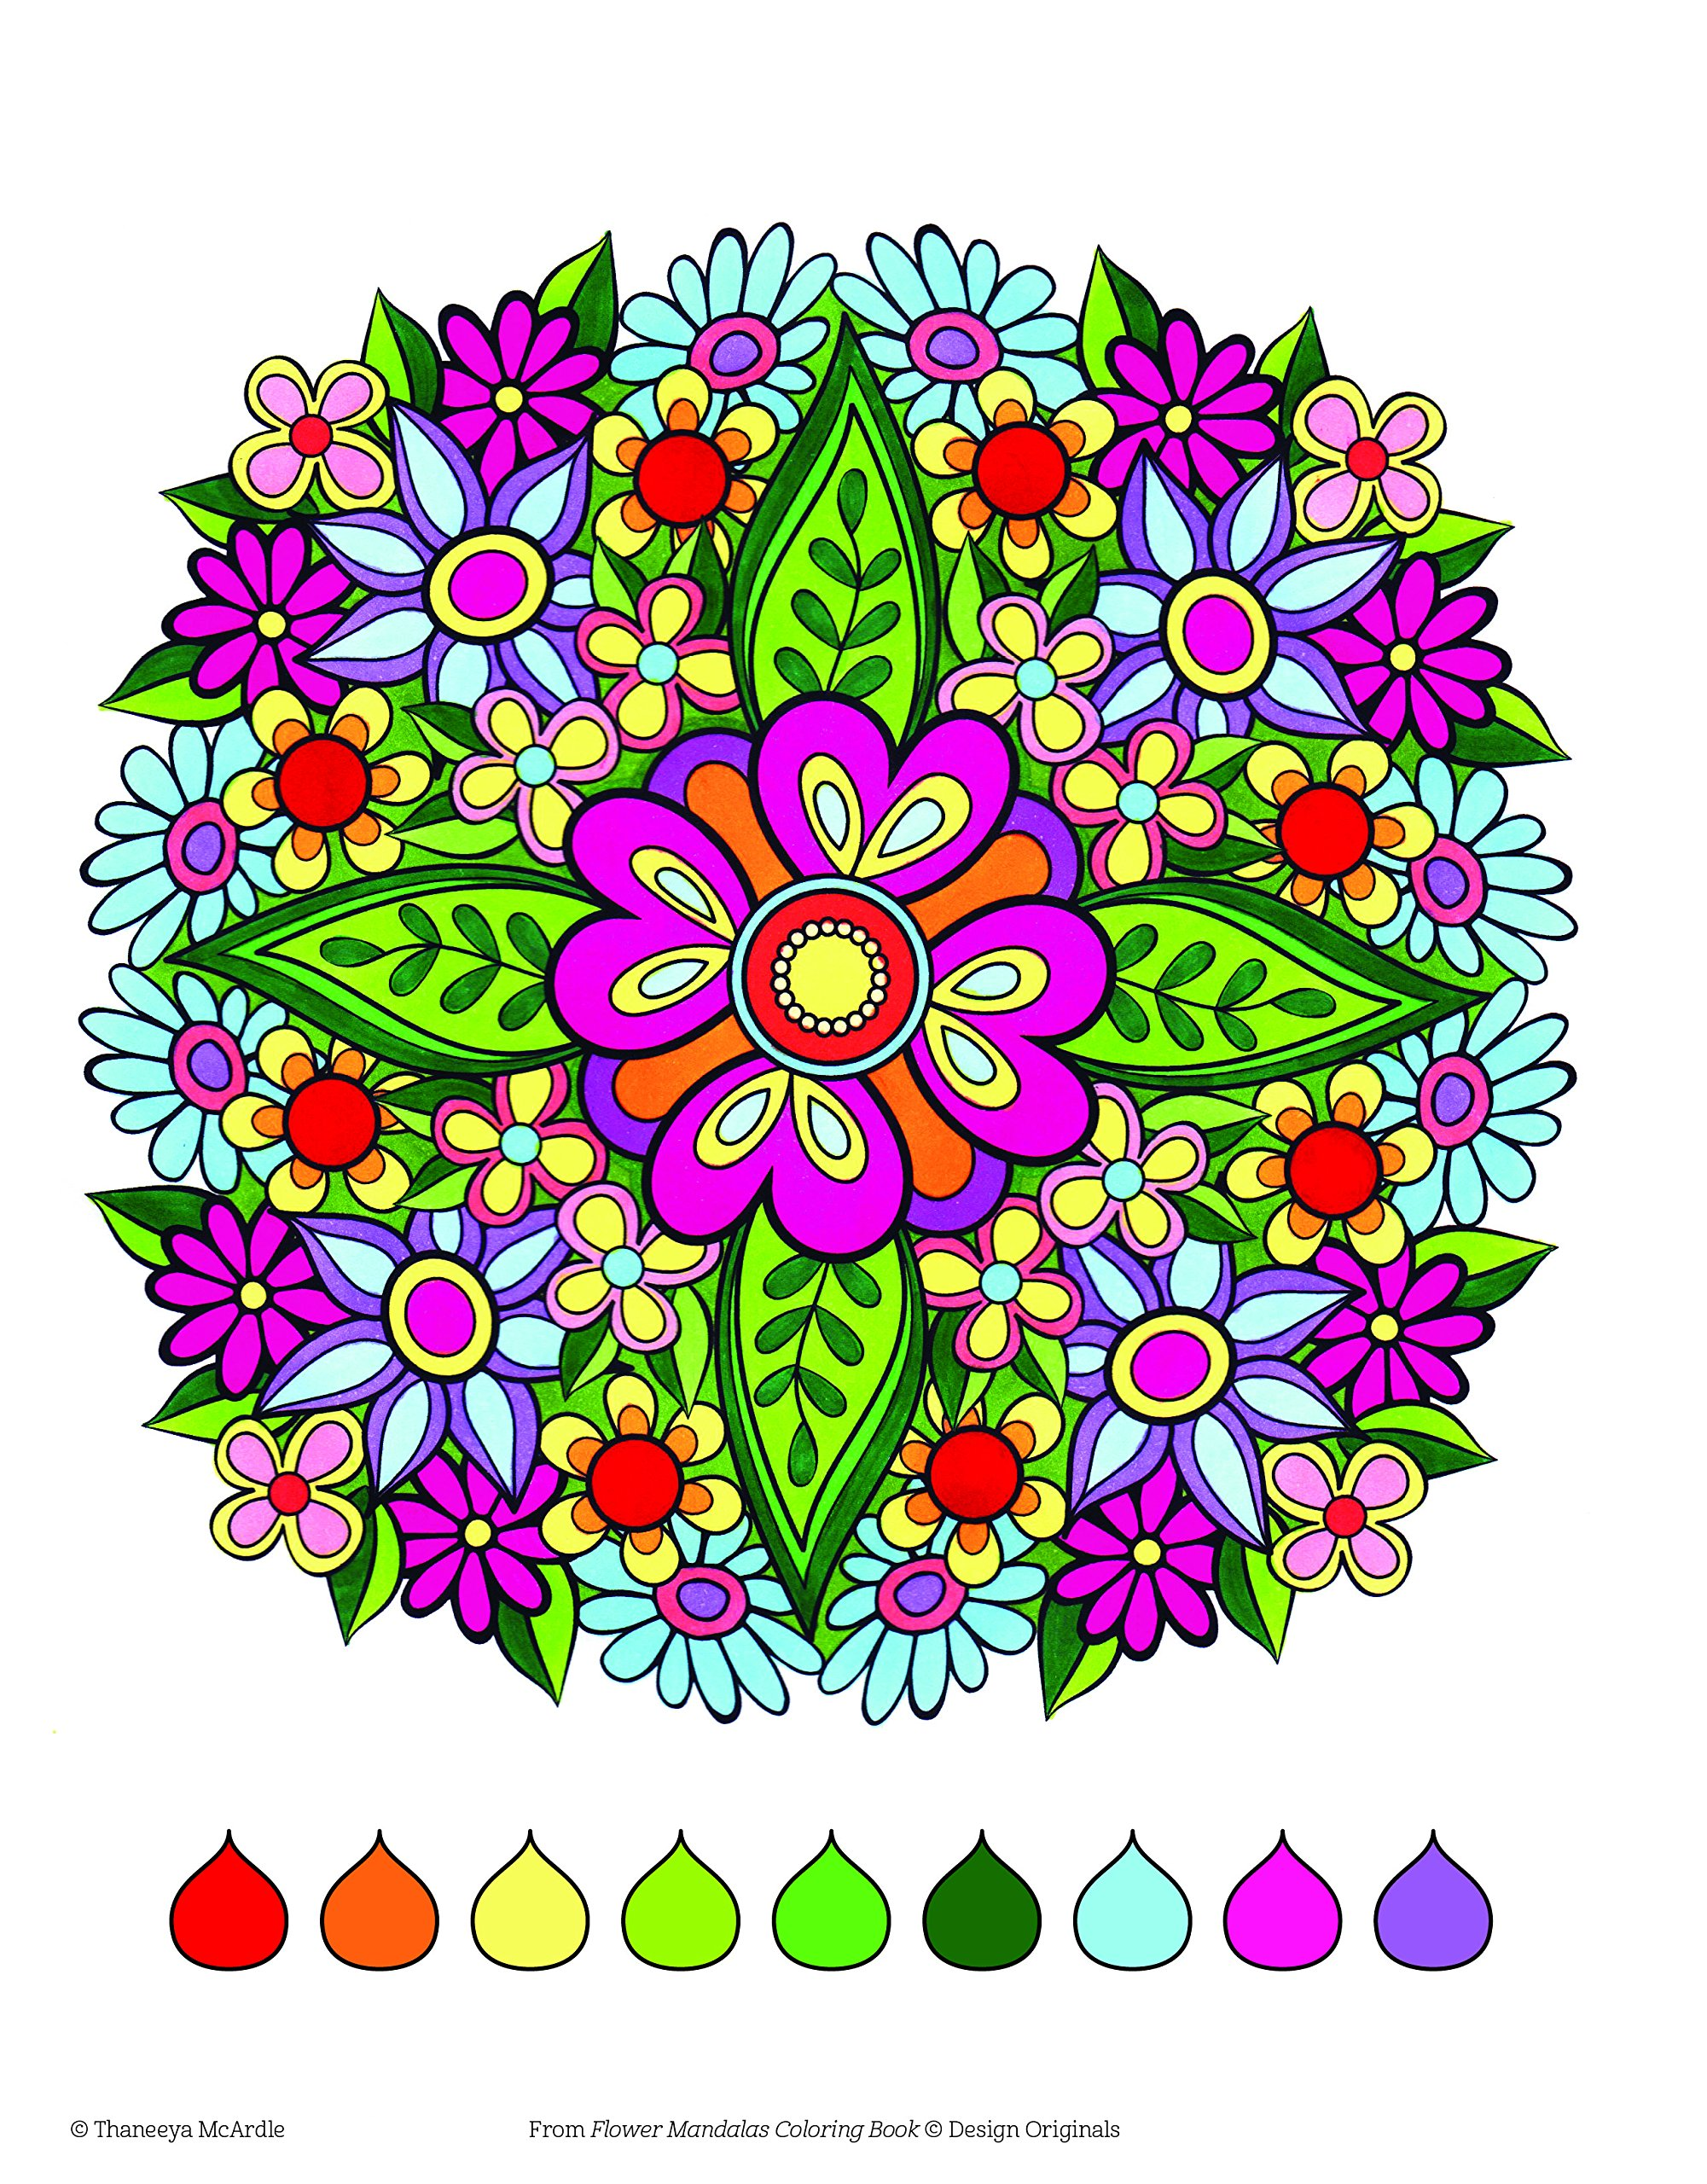 Flower Mandalas Coloring Book (Coloring Activity Book) (Coloring Is ...